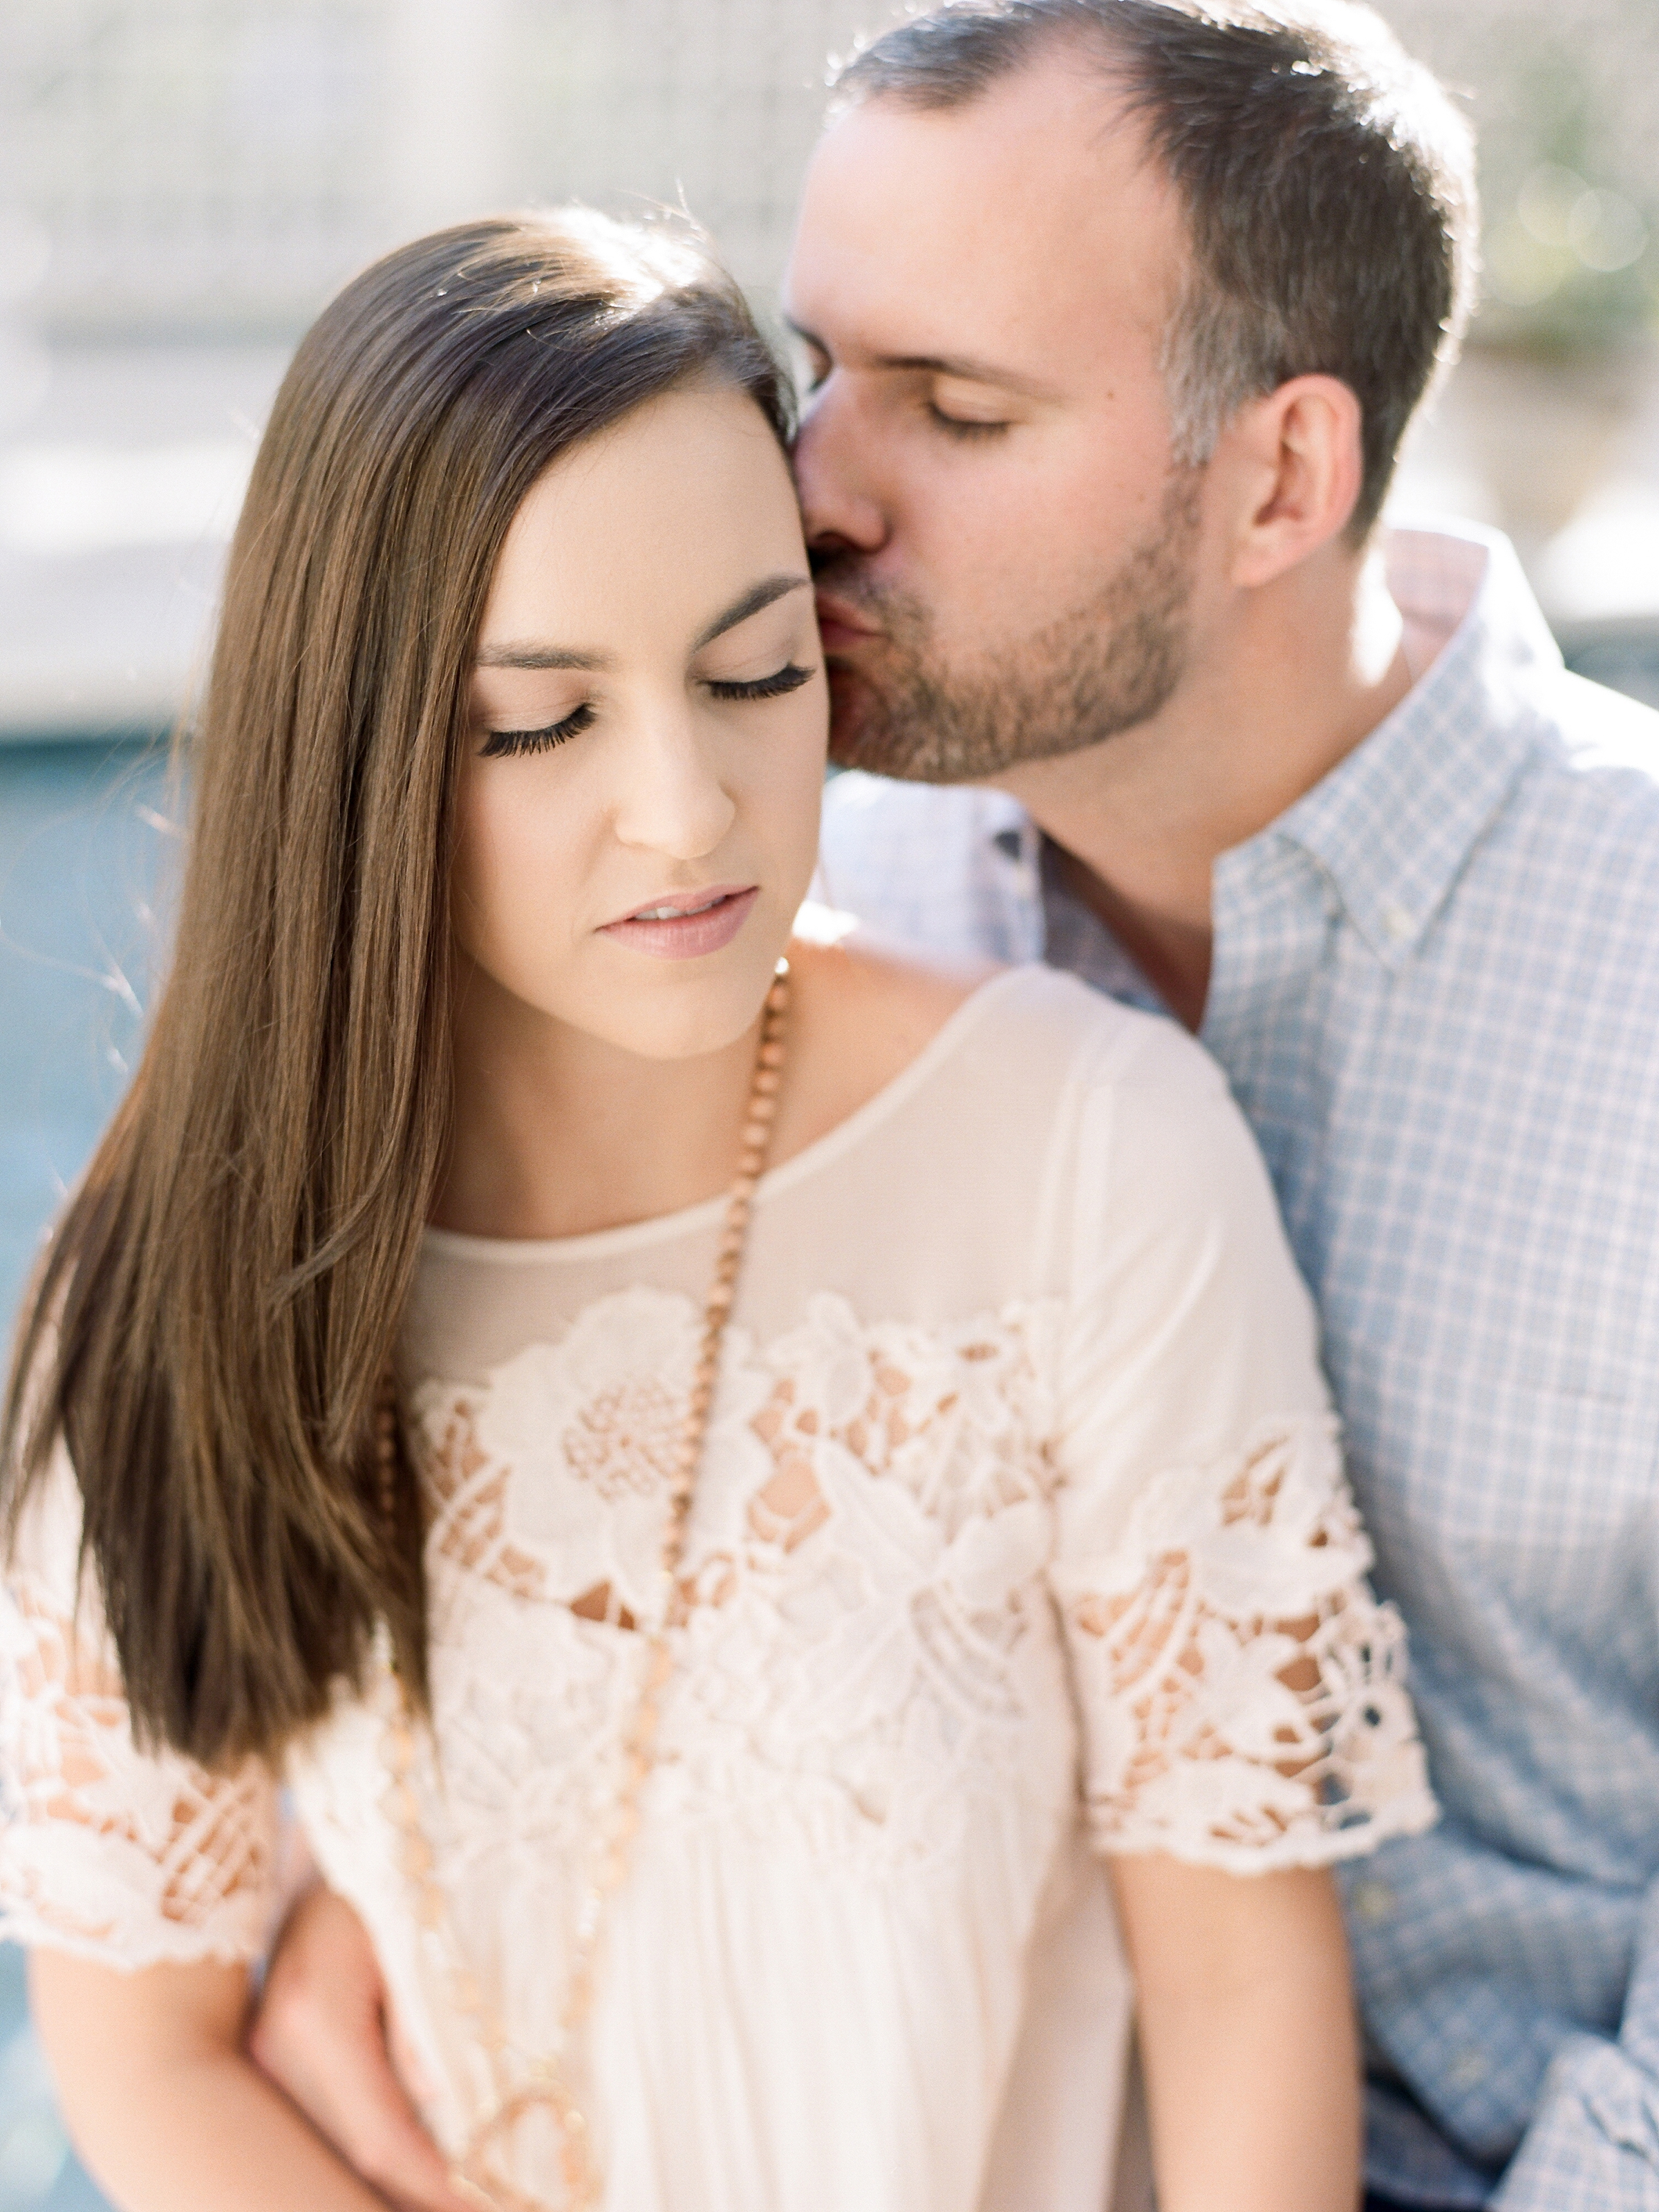 goodwood_museum_tallahassee_engagement_photographer_shannon_griffin_0011.jpg